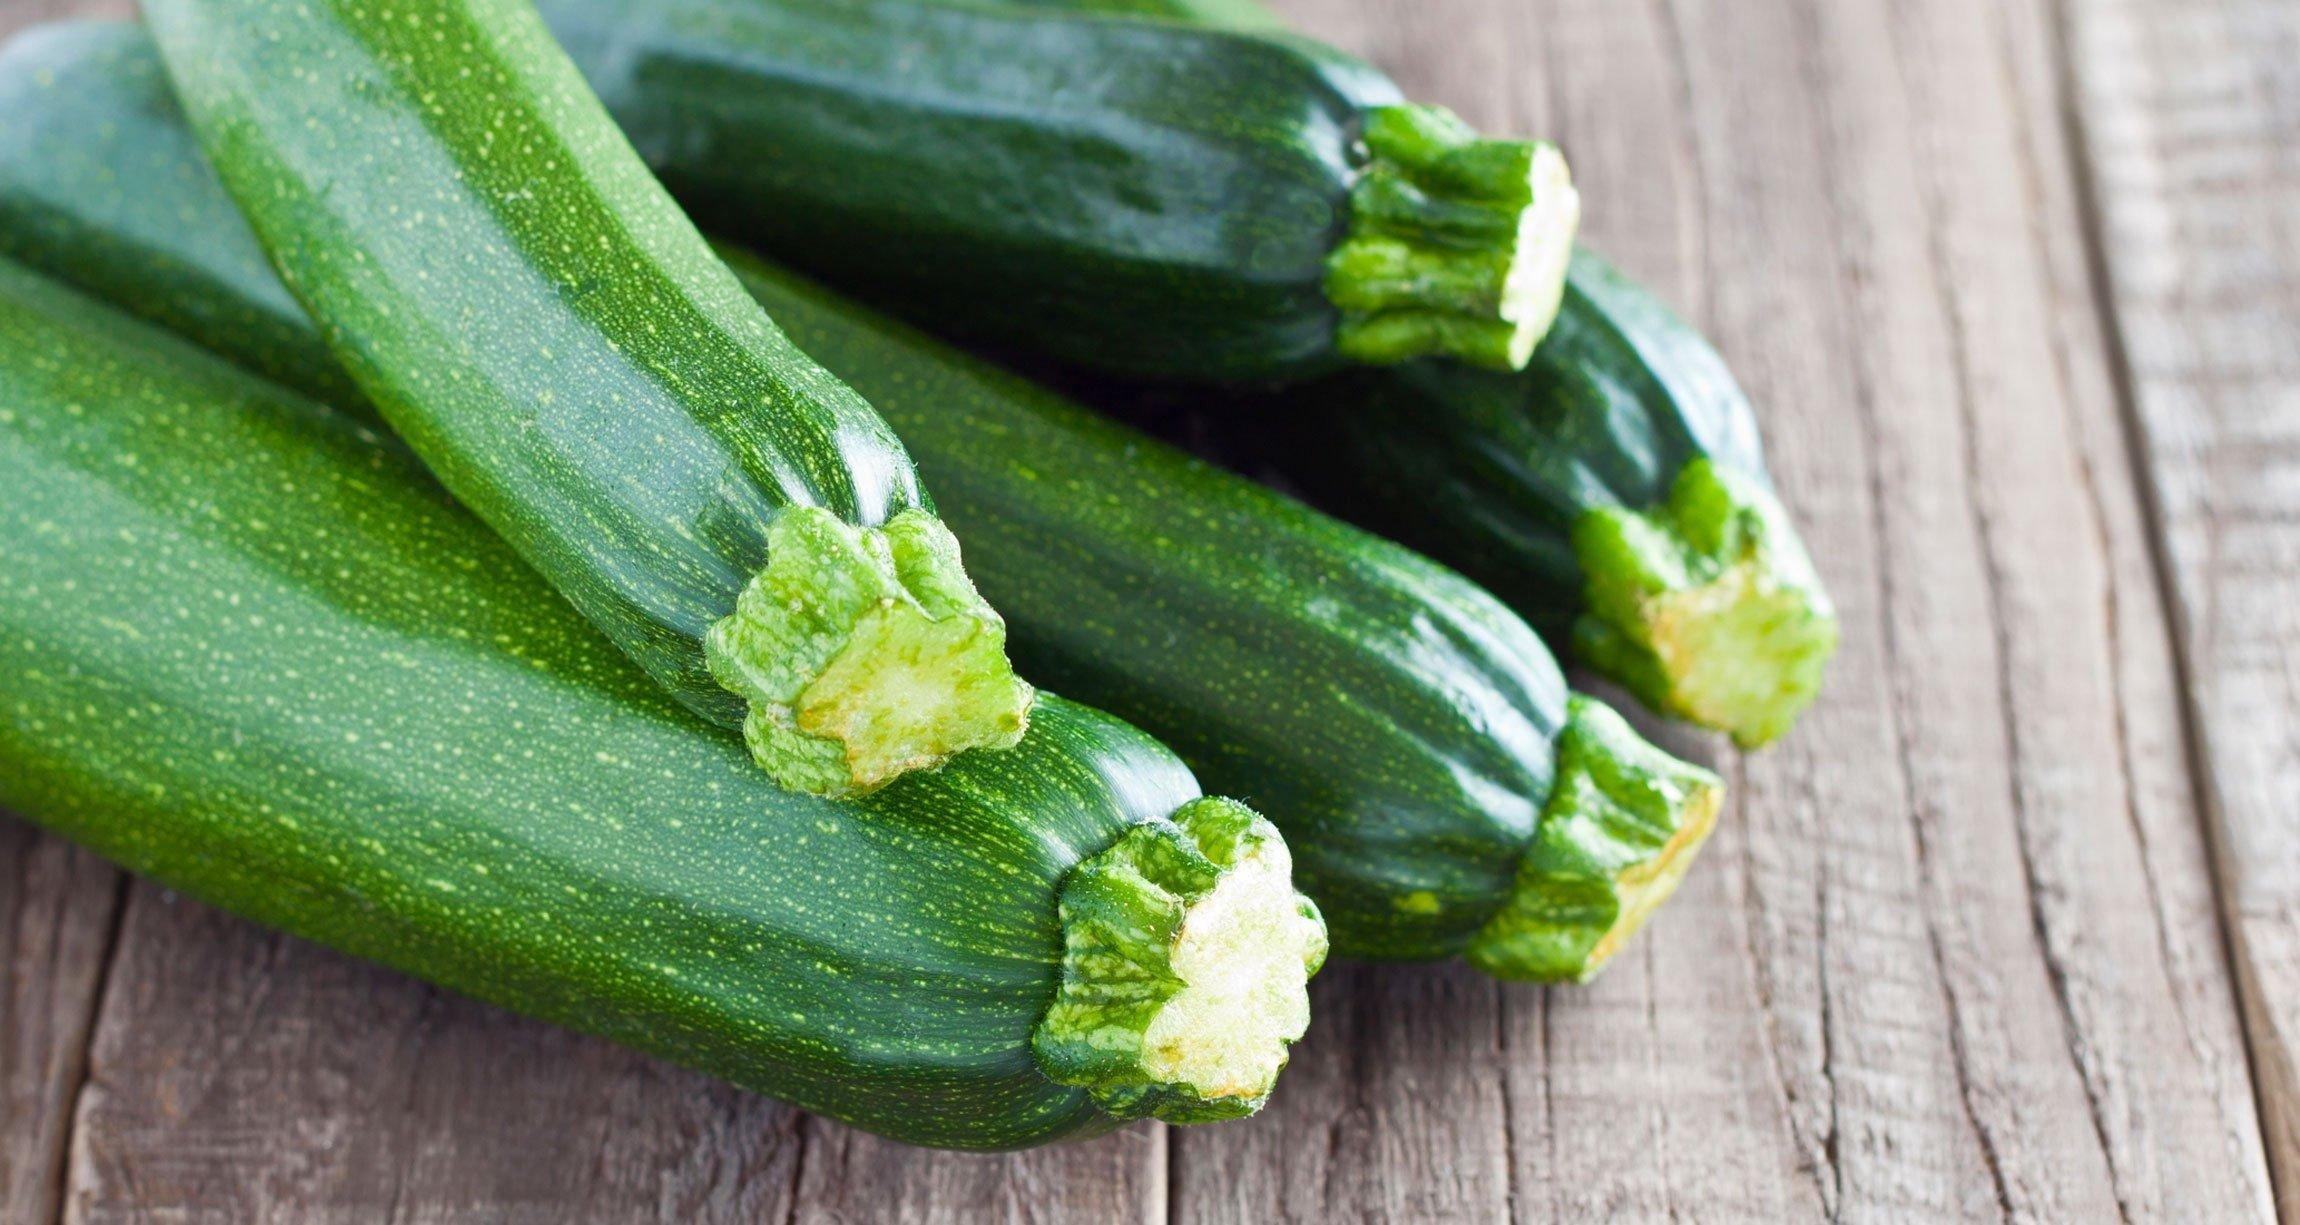 Zucchini Benefits: 9 Reasons To Eat More Of This Squash